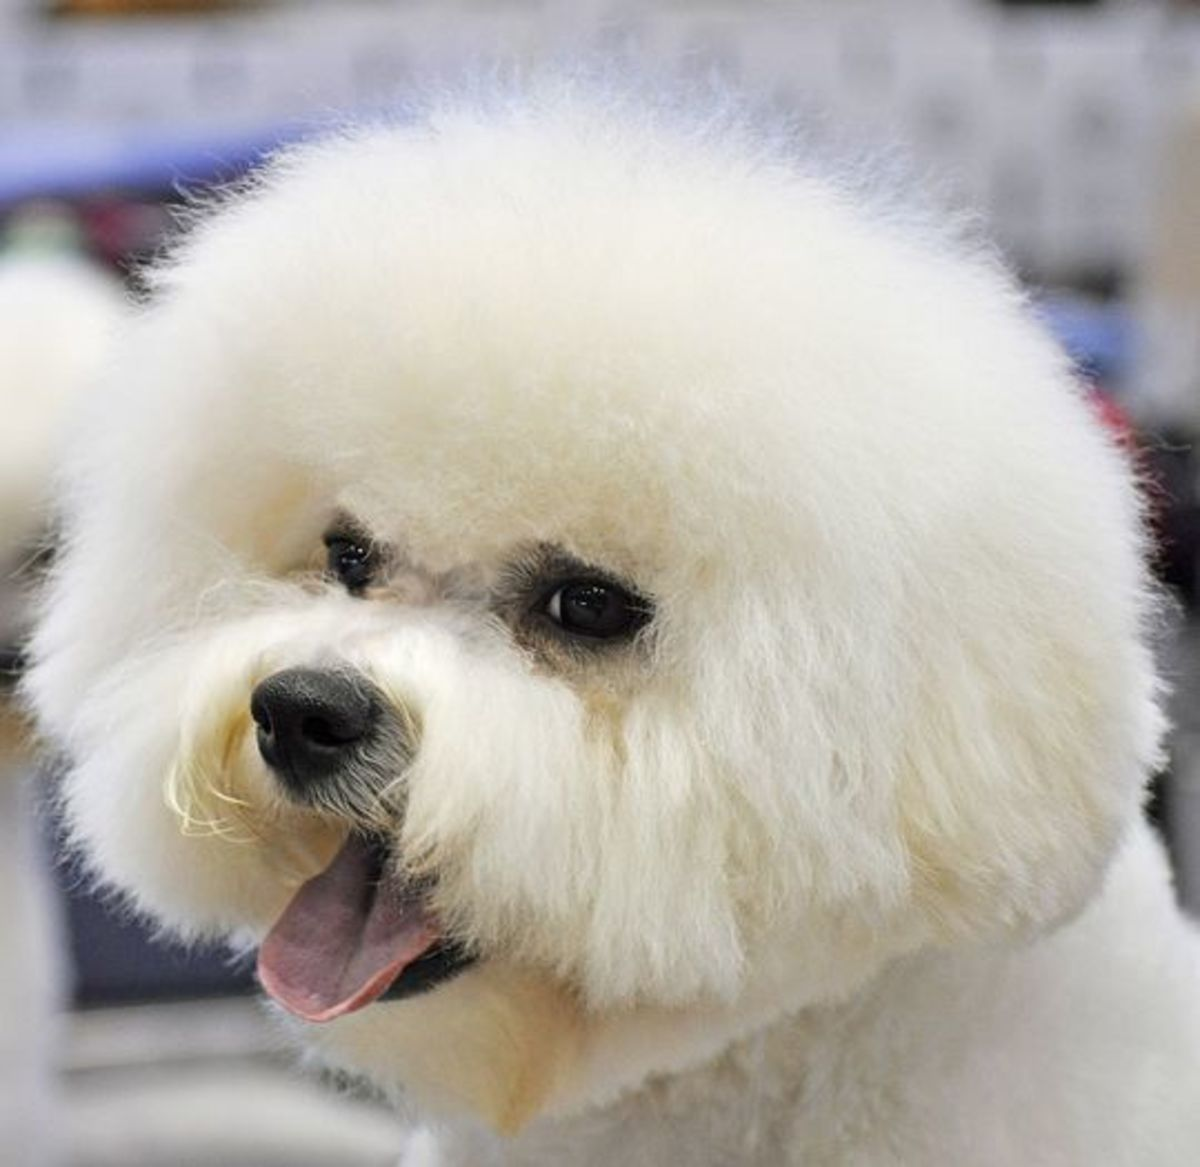 Bichon Frisé usually look happy.